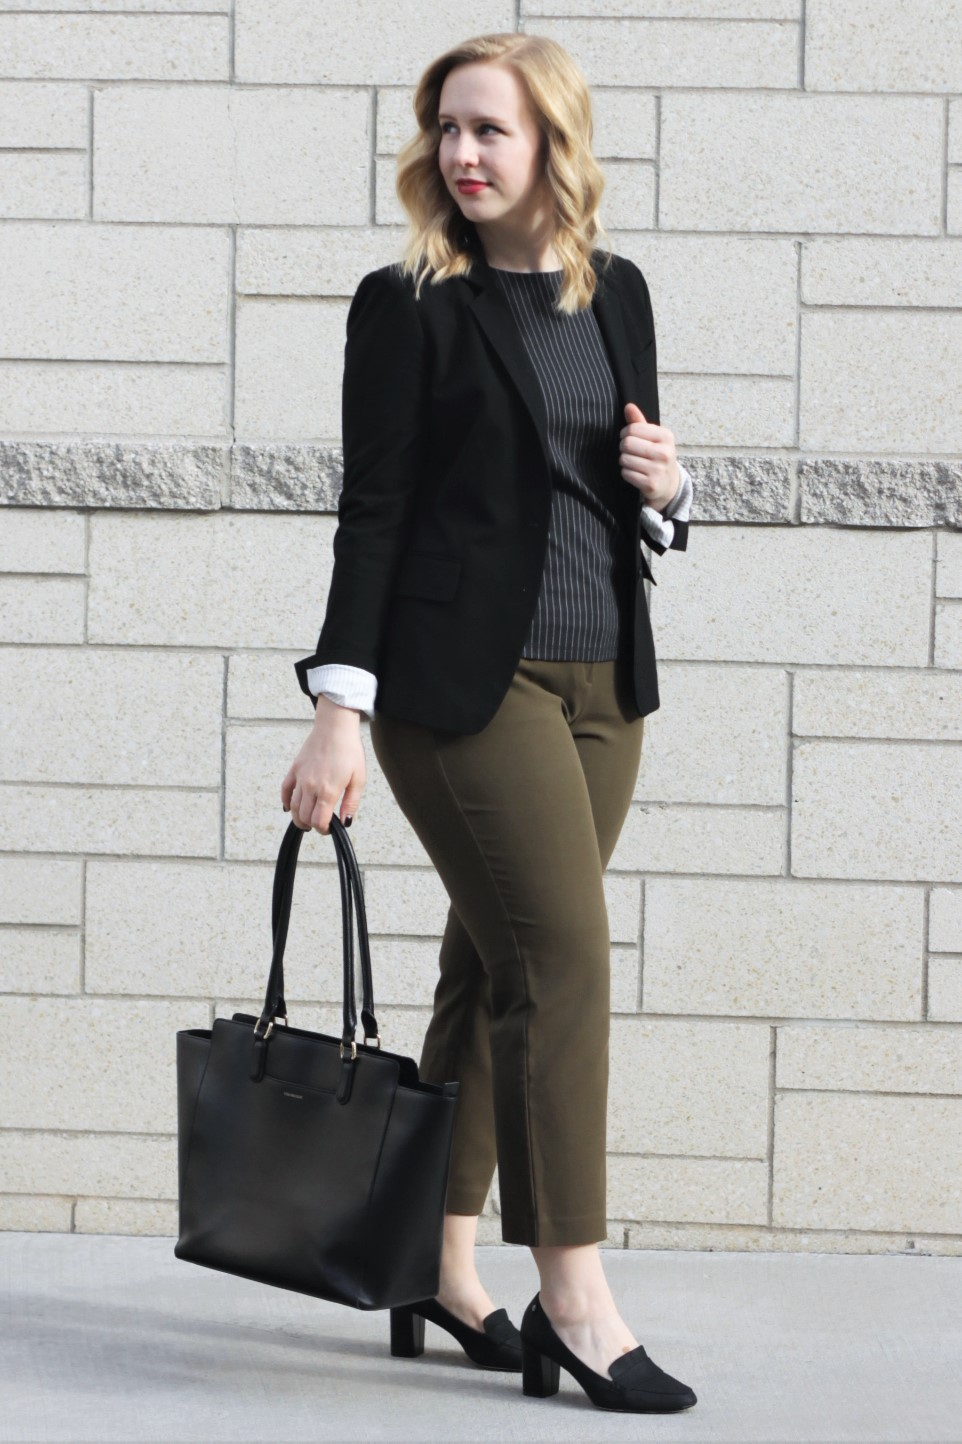 The Power Suit: Updated | Work & What She Wore